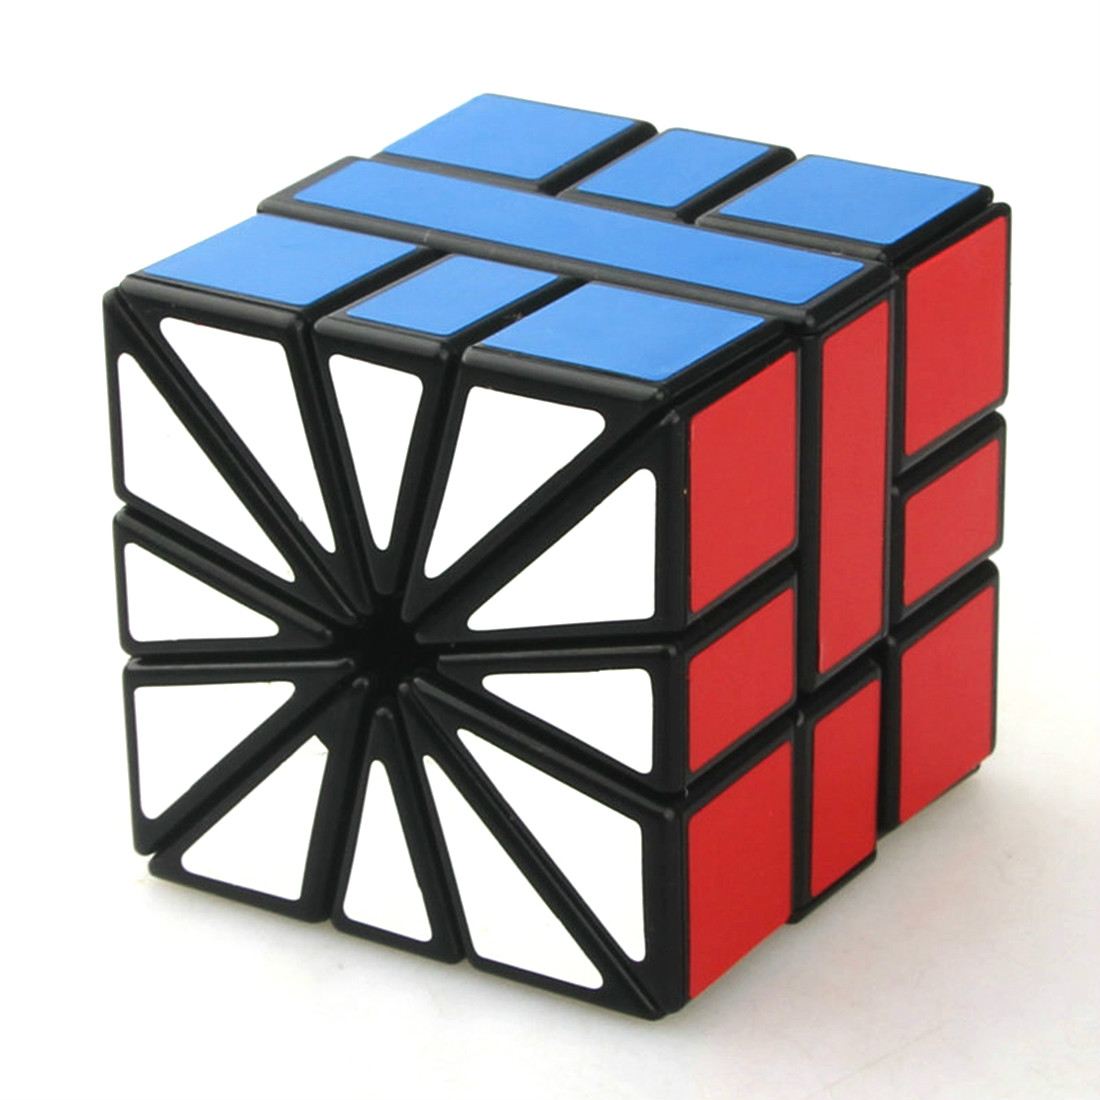 CubeTwist Strange Shape Cube Black White Square II SQ2 3x3x3 Speed Cube Sector Magic Cube Puzzle Toy